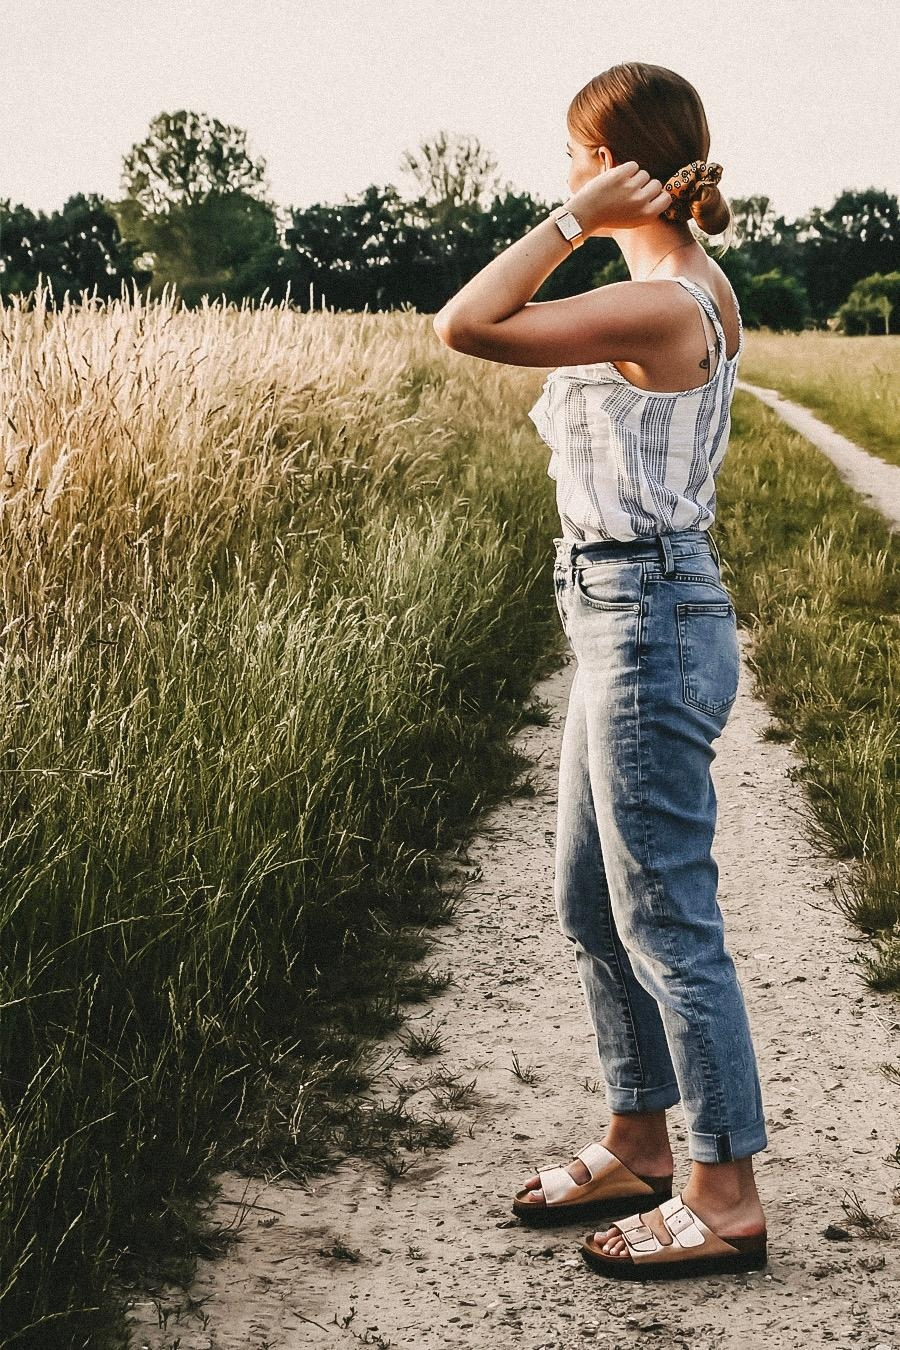 #birkenstockliebe #ootd #outfitinspo #style #outfit #streetstyle